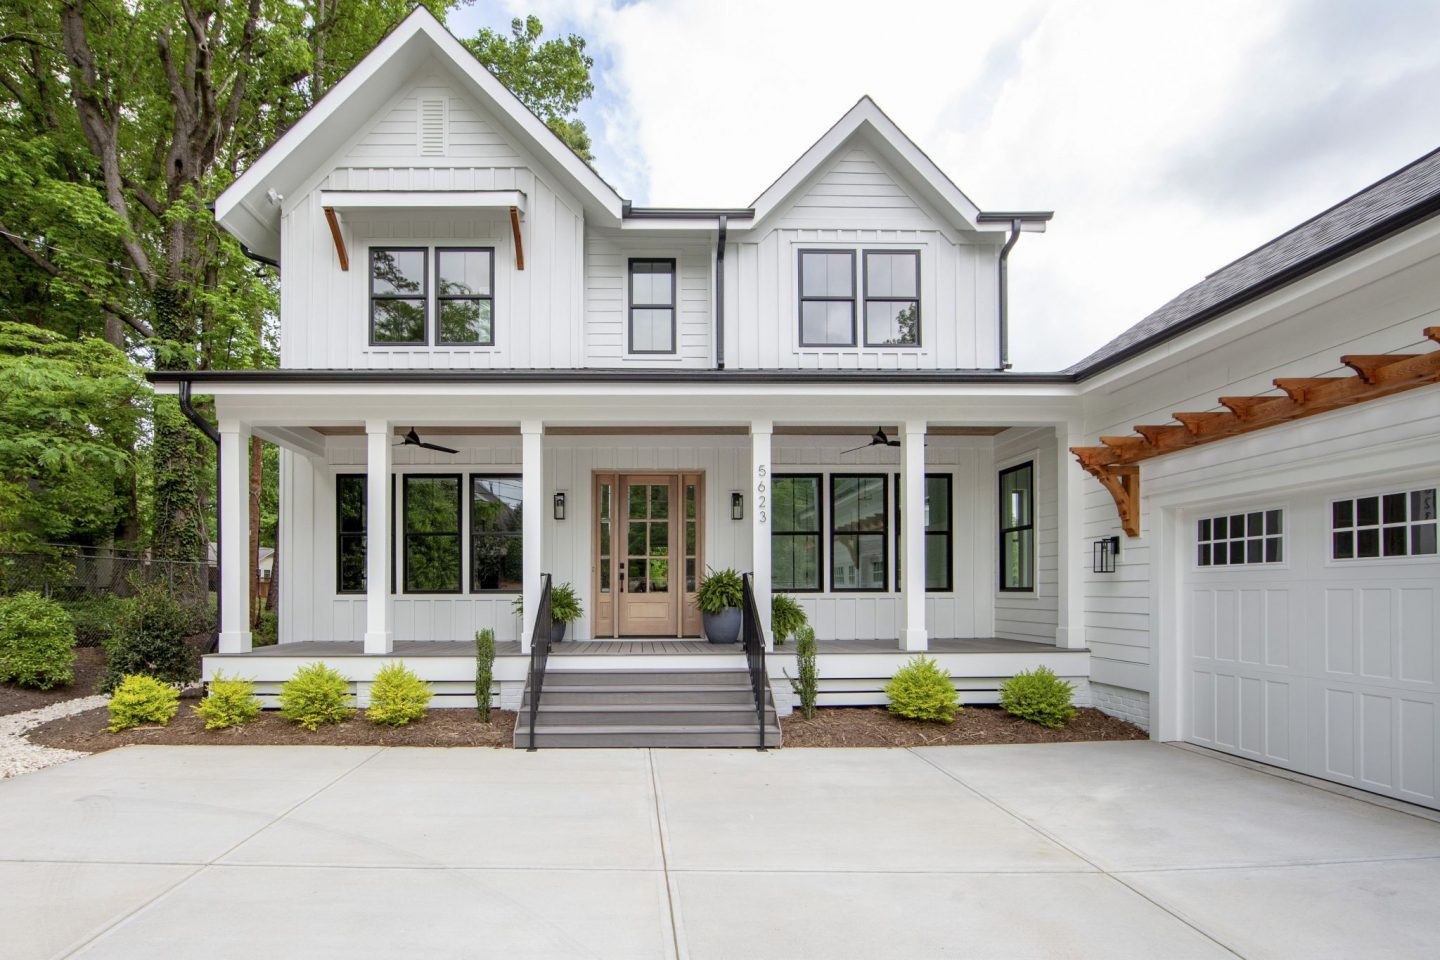 Modern Farmhouse - Custom Home - Chelsea Building Group - Charlotte, NC